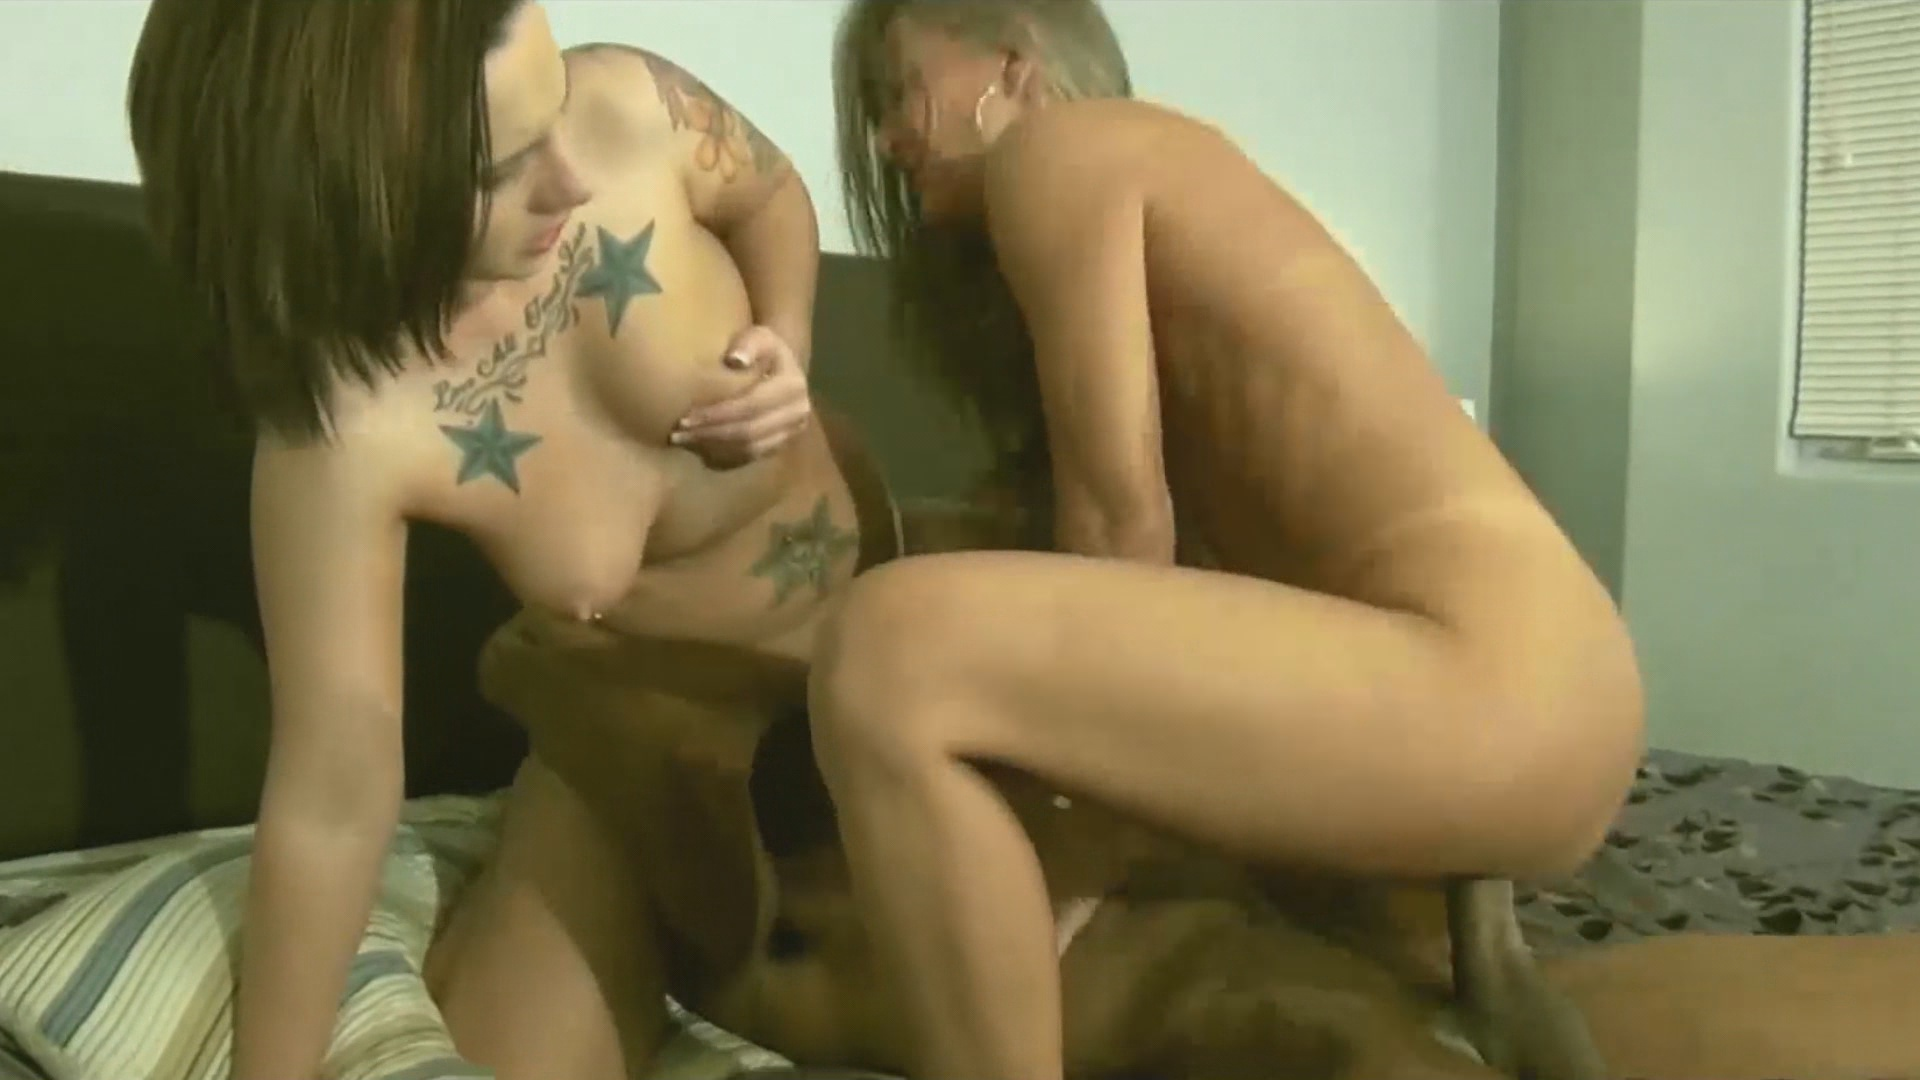 Puzzy Bandit 3: 3 Sum xvideos181002